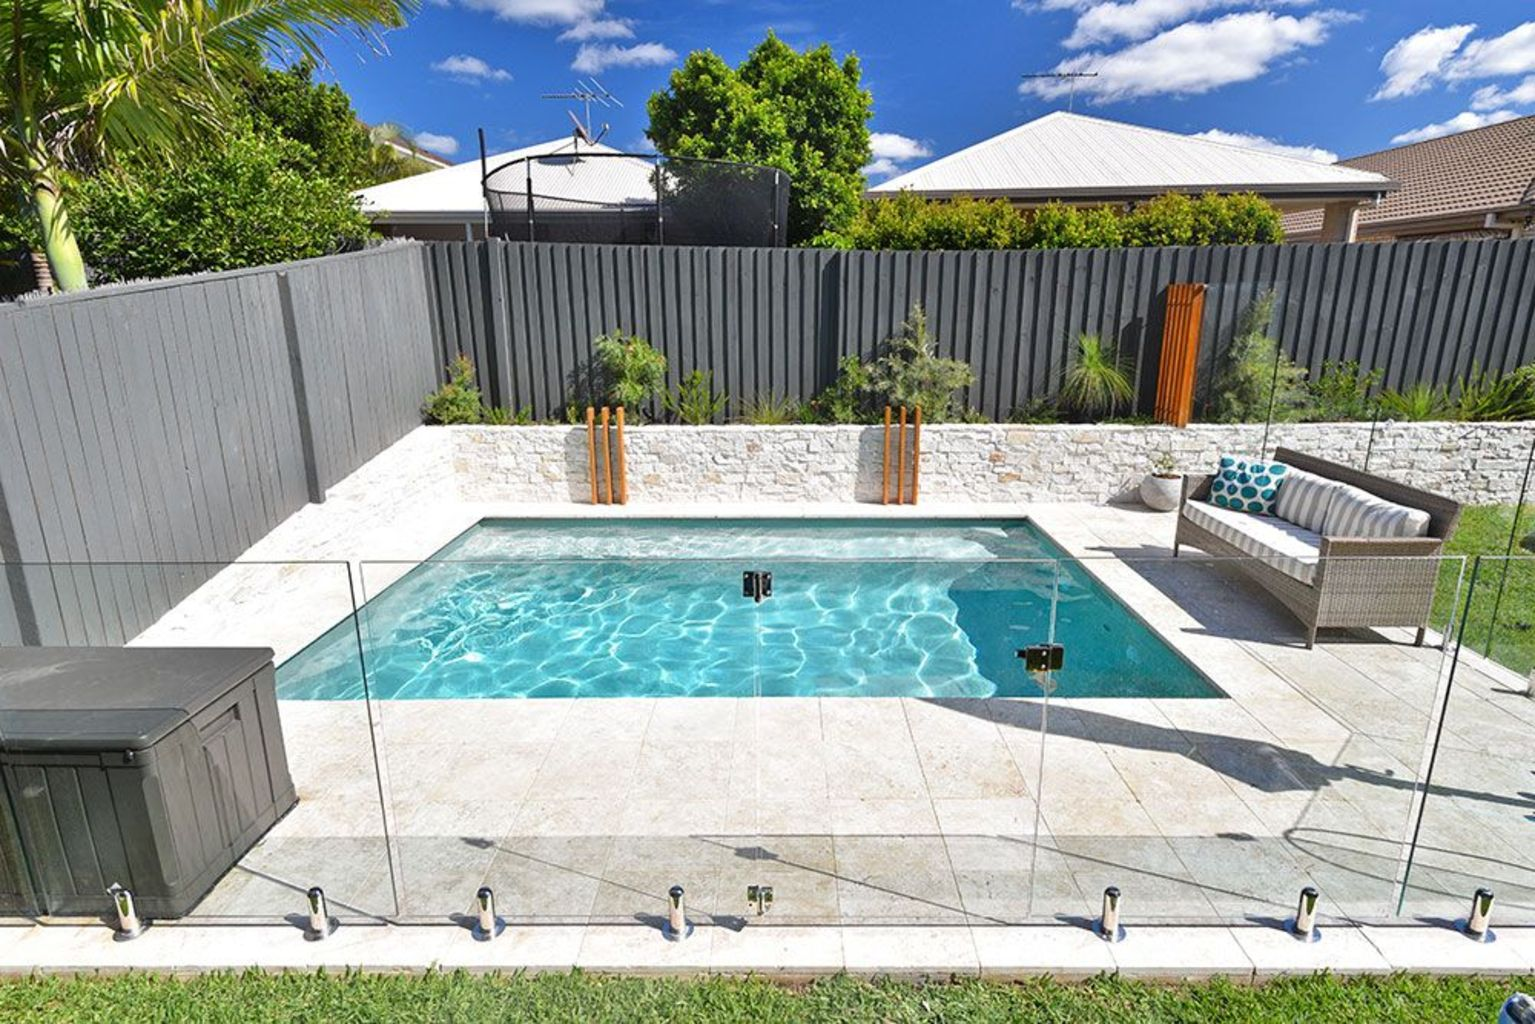 Small swimming pools made for small spaces and tight budgets Part 32